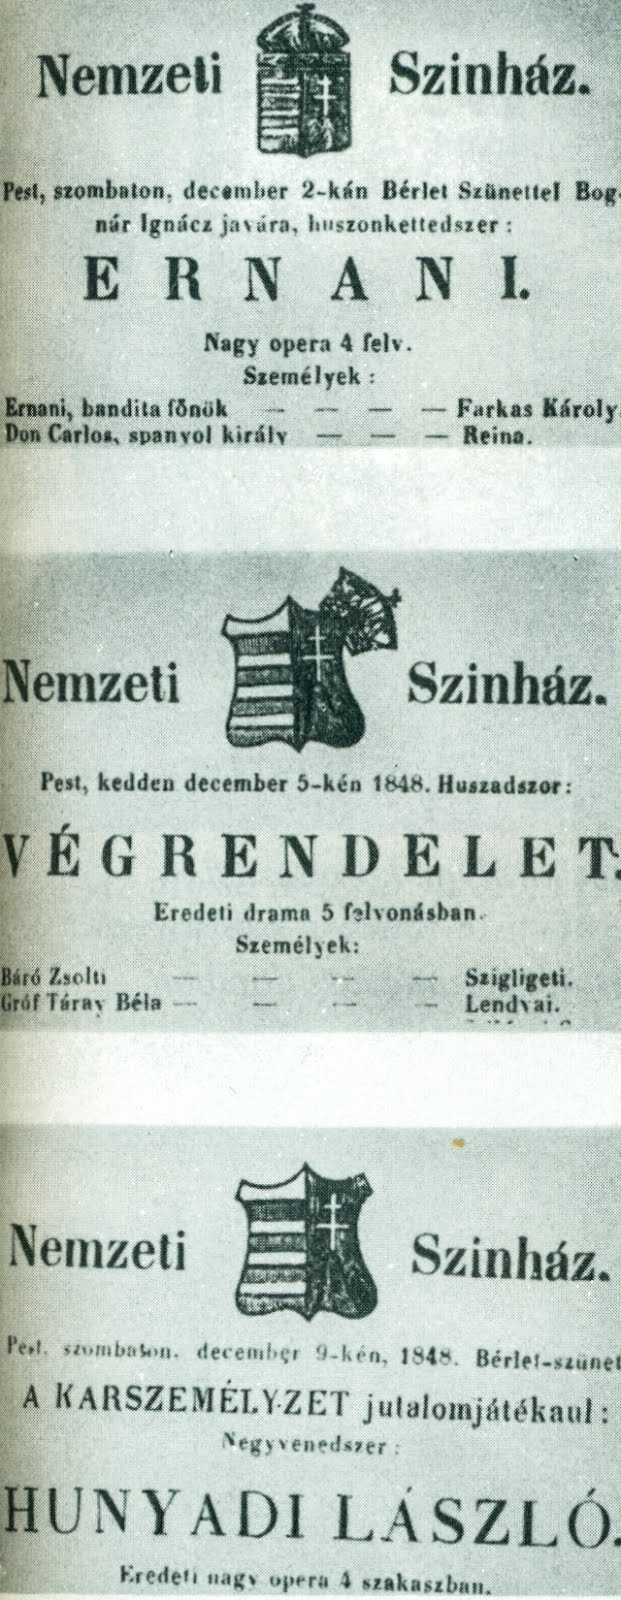 http://upload.wikimedia.org/wikipedia/commons/1/1c/The_Crown_diappearing_from_the_top_of_the_Hungarian_coat-of-arms_during_the_Revolution_in_1848.jpg